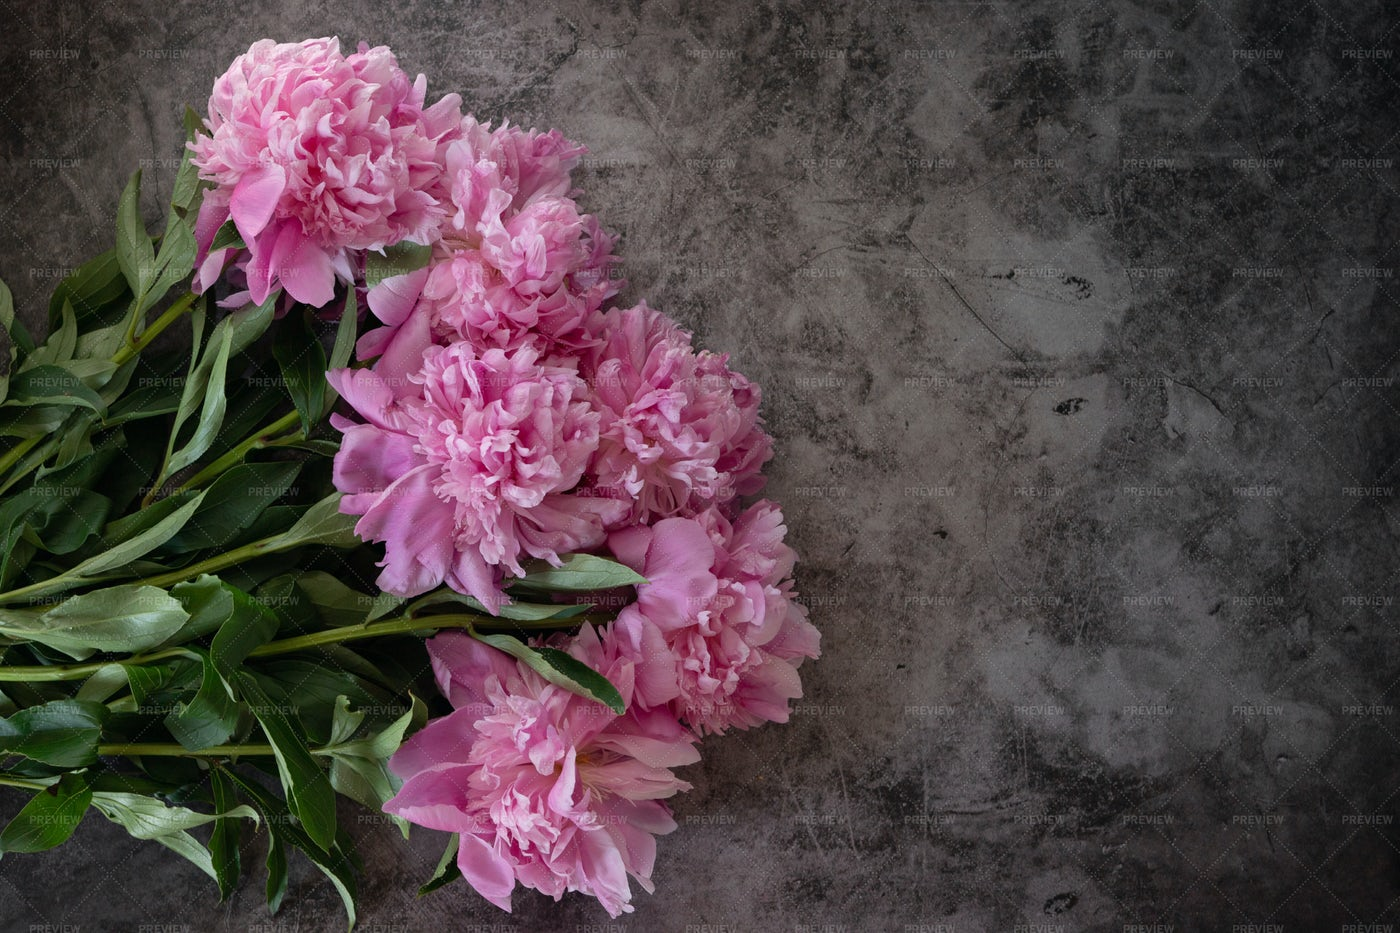 Pink Peony Flower On Cement: Stock Photos